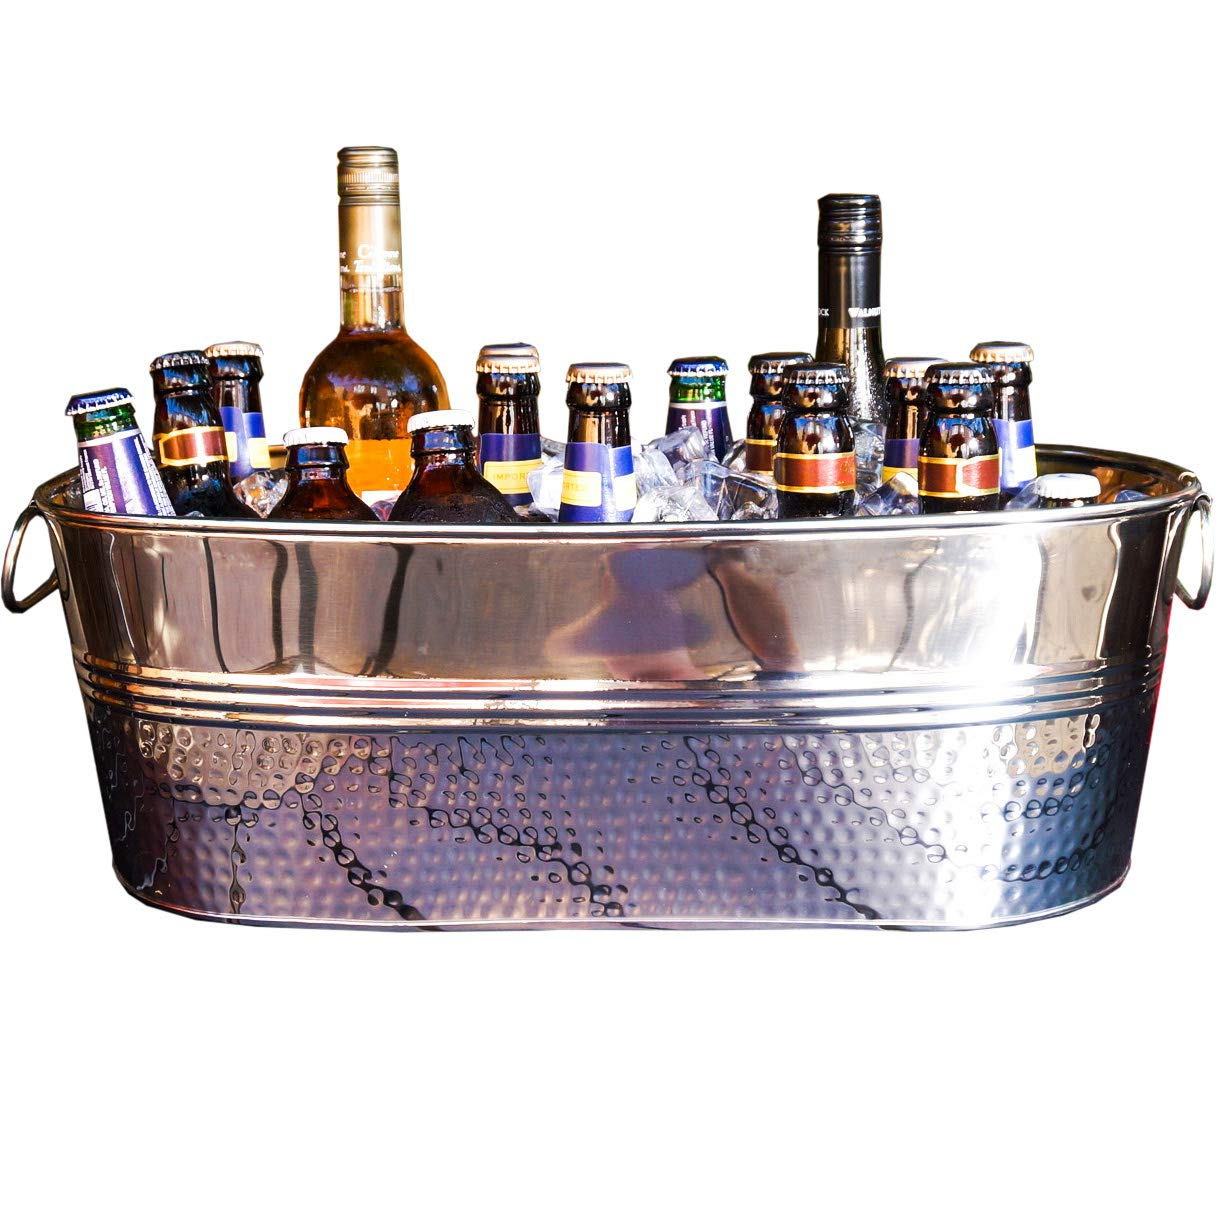 BREKX Colt Hammered Stainless Steel Party Beverage Tub & Wine Chiller - Silver